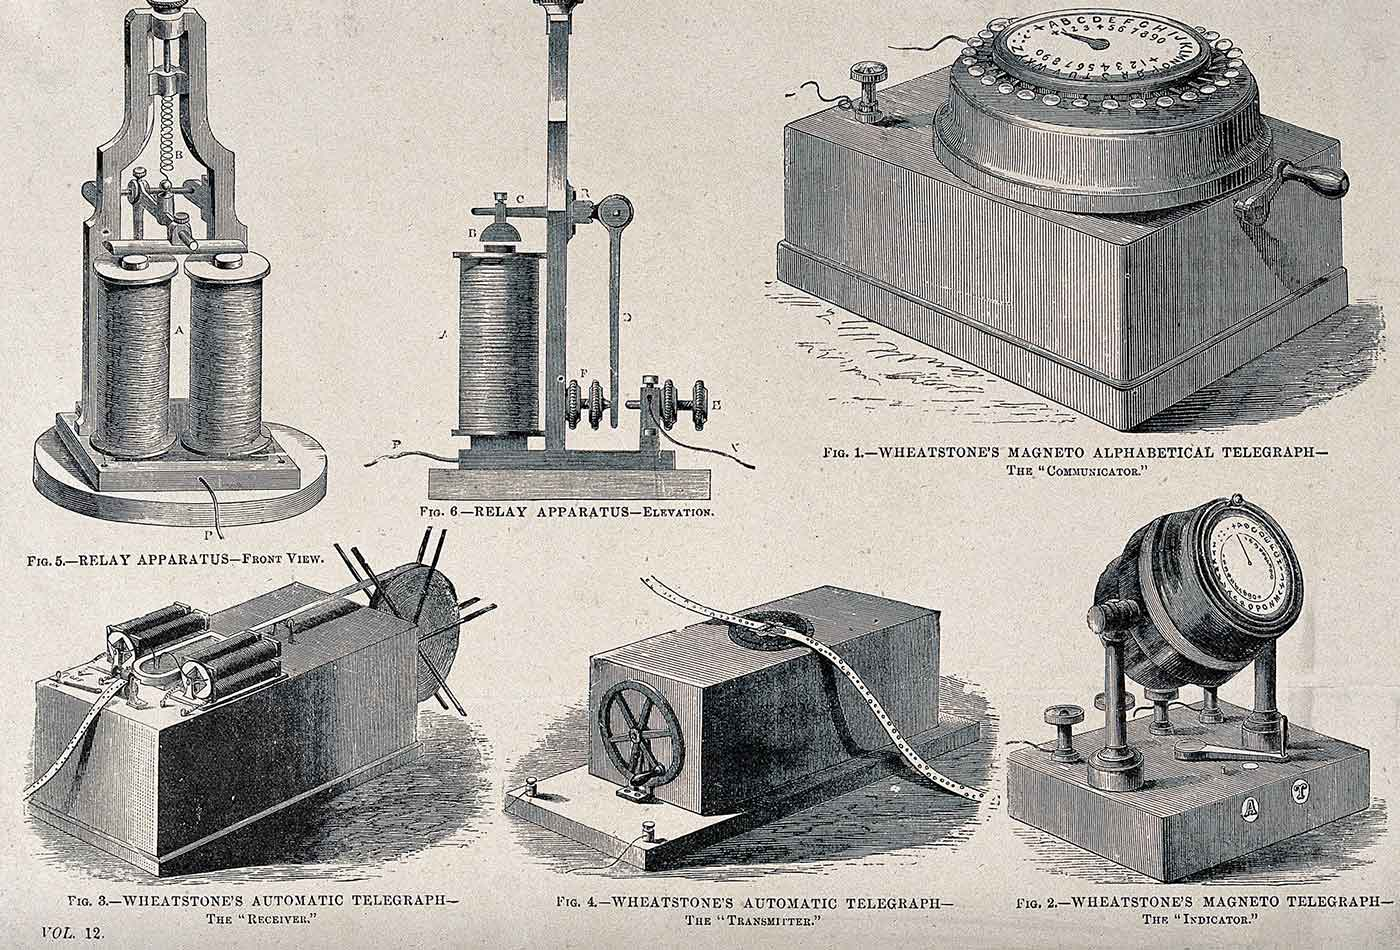 Components of the electromechanical telegraph network.